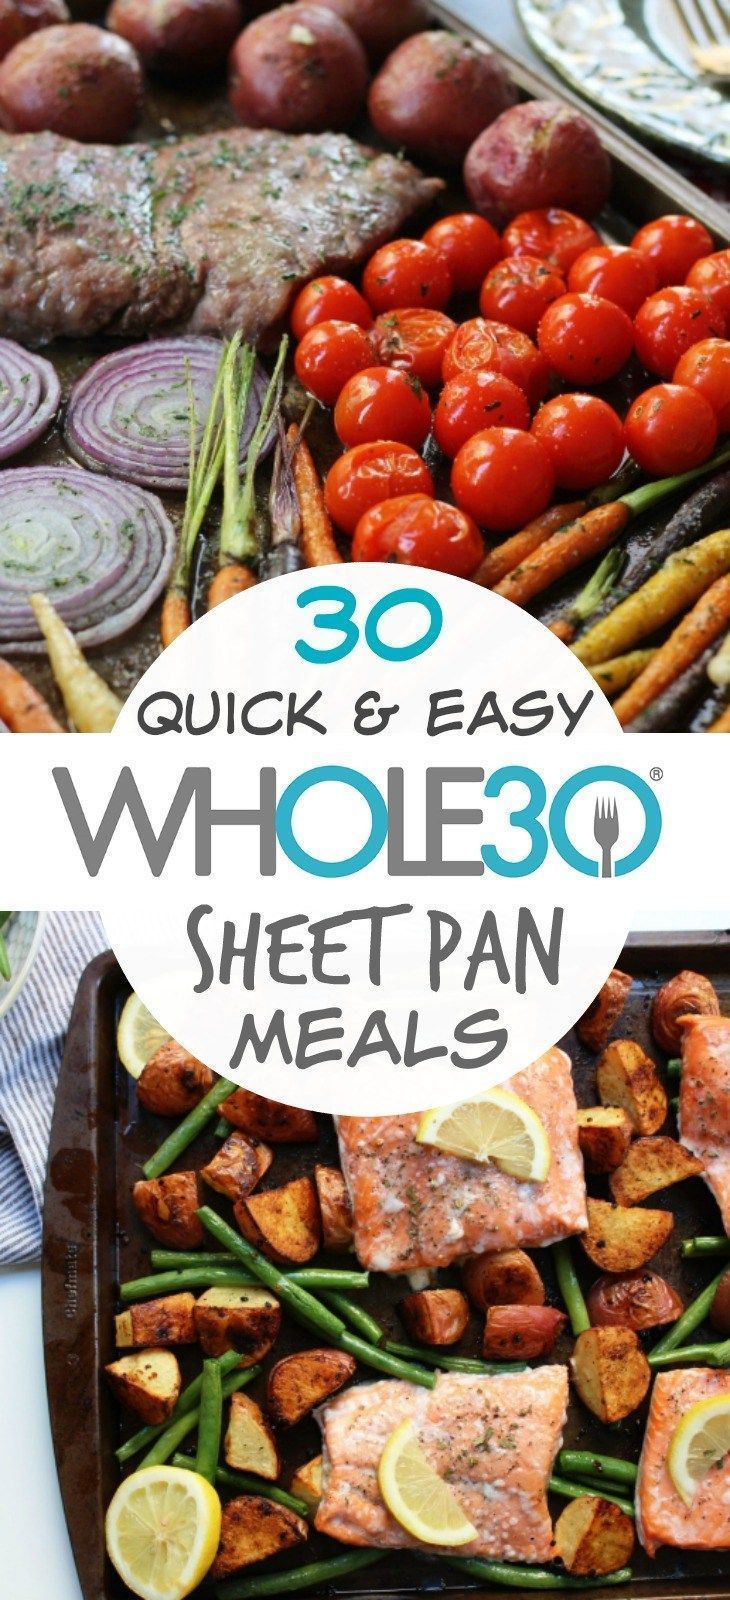 30 Whole30 Sheet Pan Recipes: The Best Quick and Easy One Pan Meals images